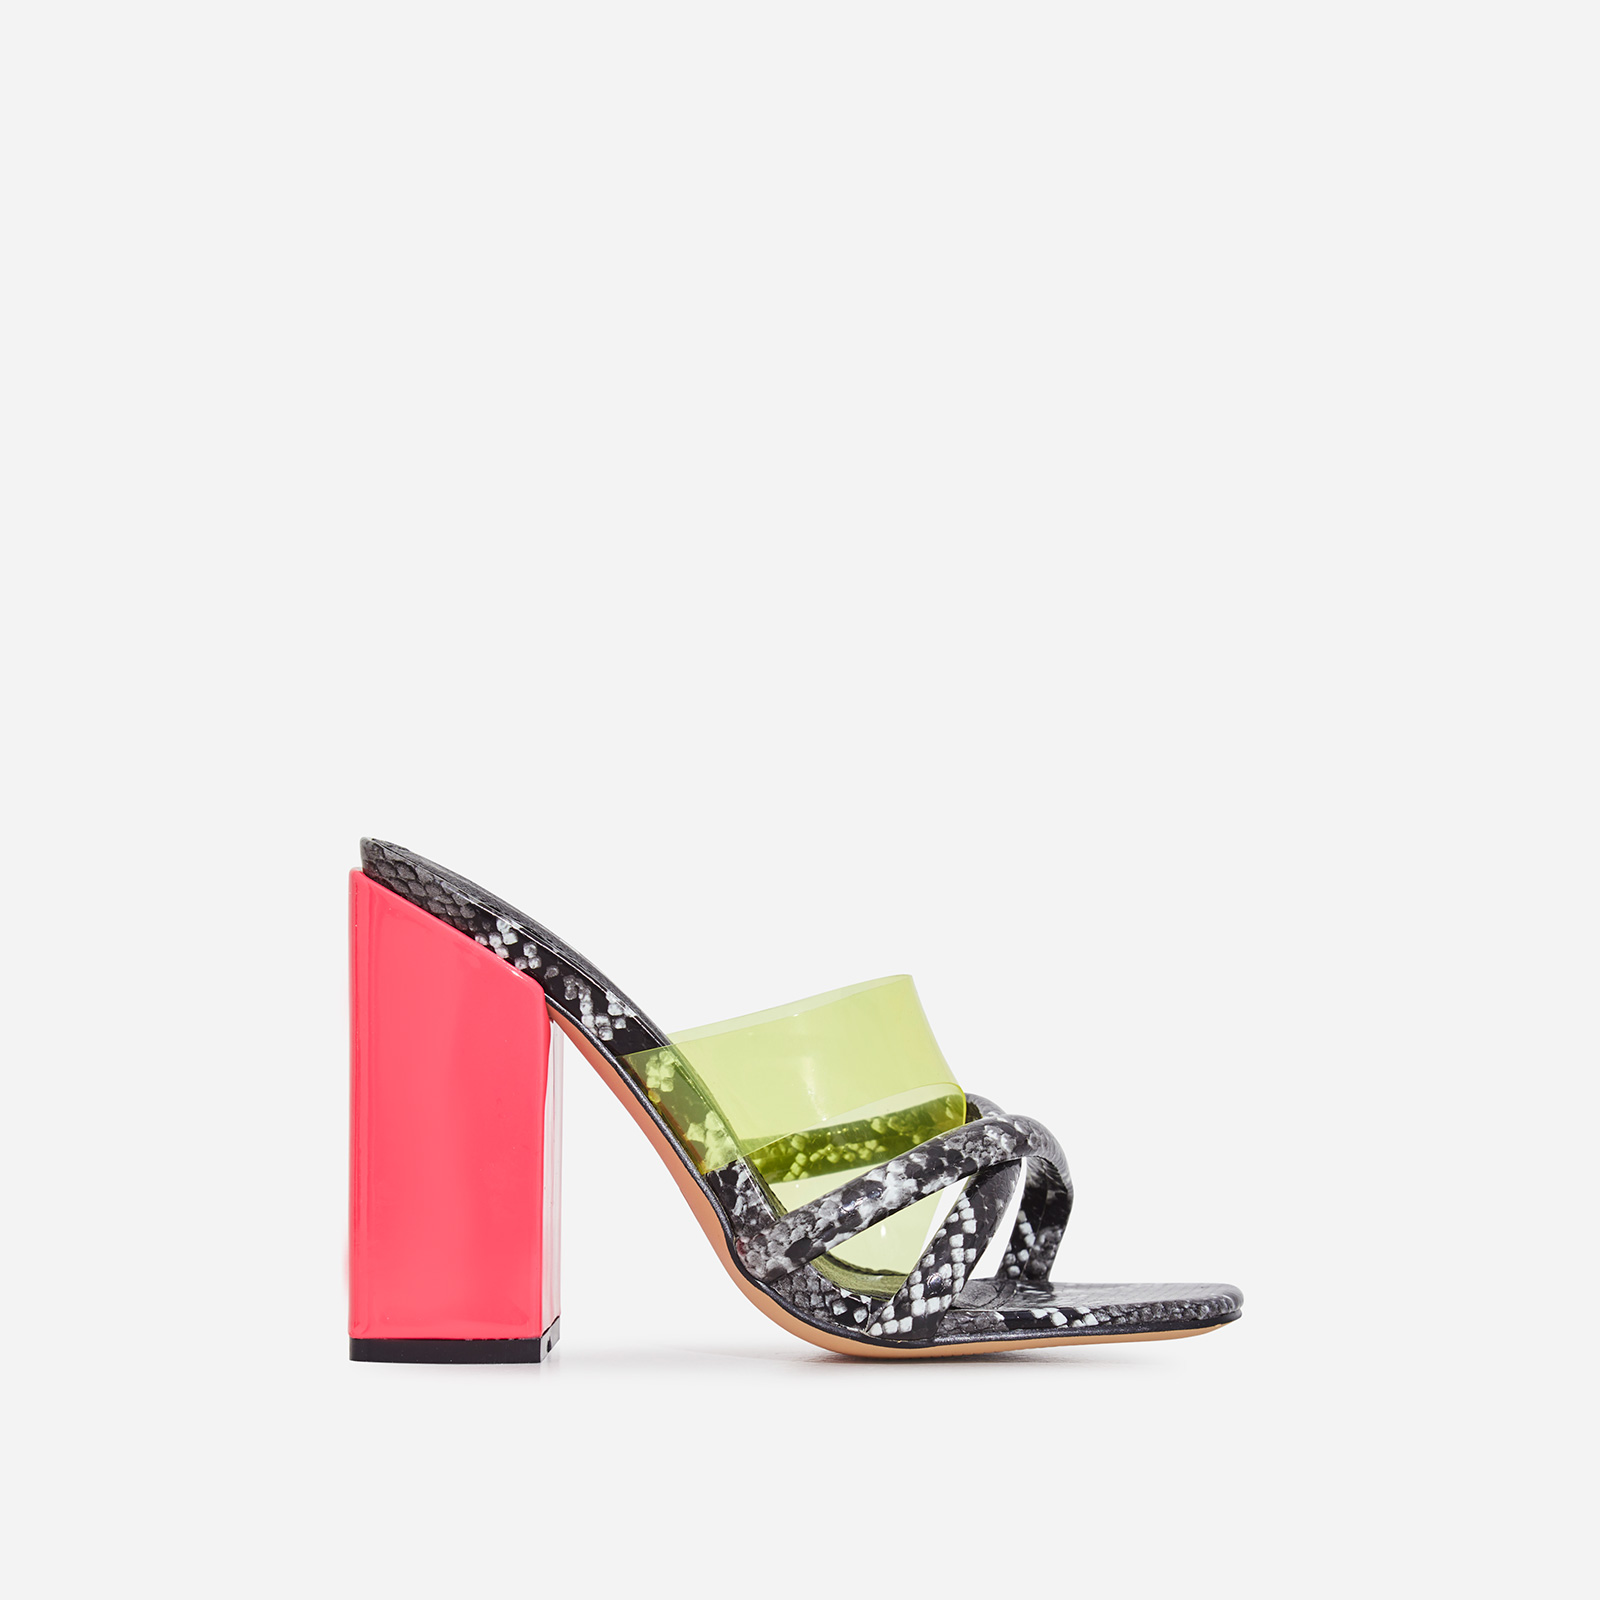 Lumi Square Toe Perspex Block Heel Mule In Grey Snake Print Faux Leather